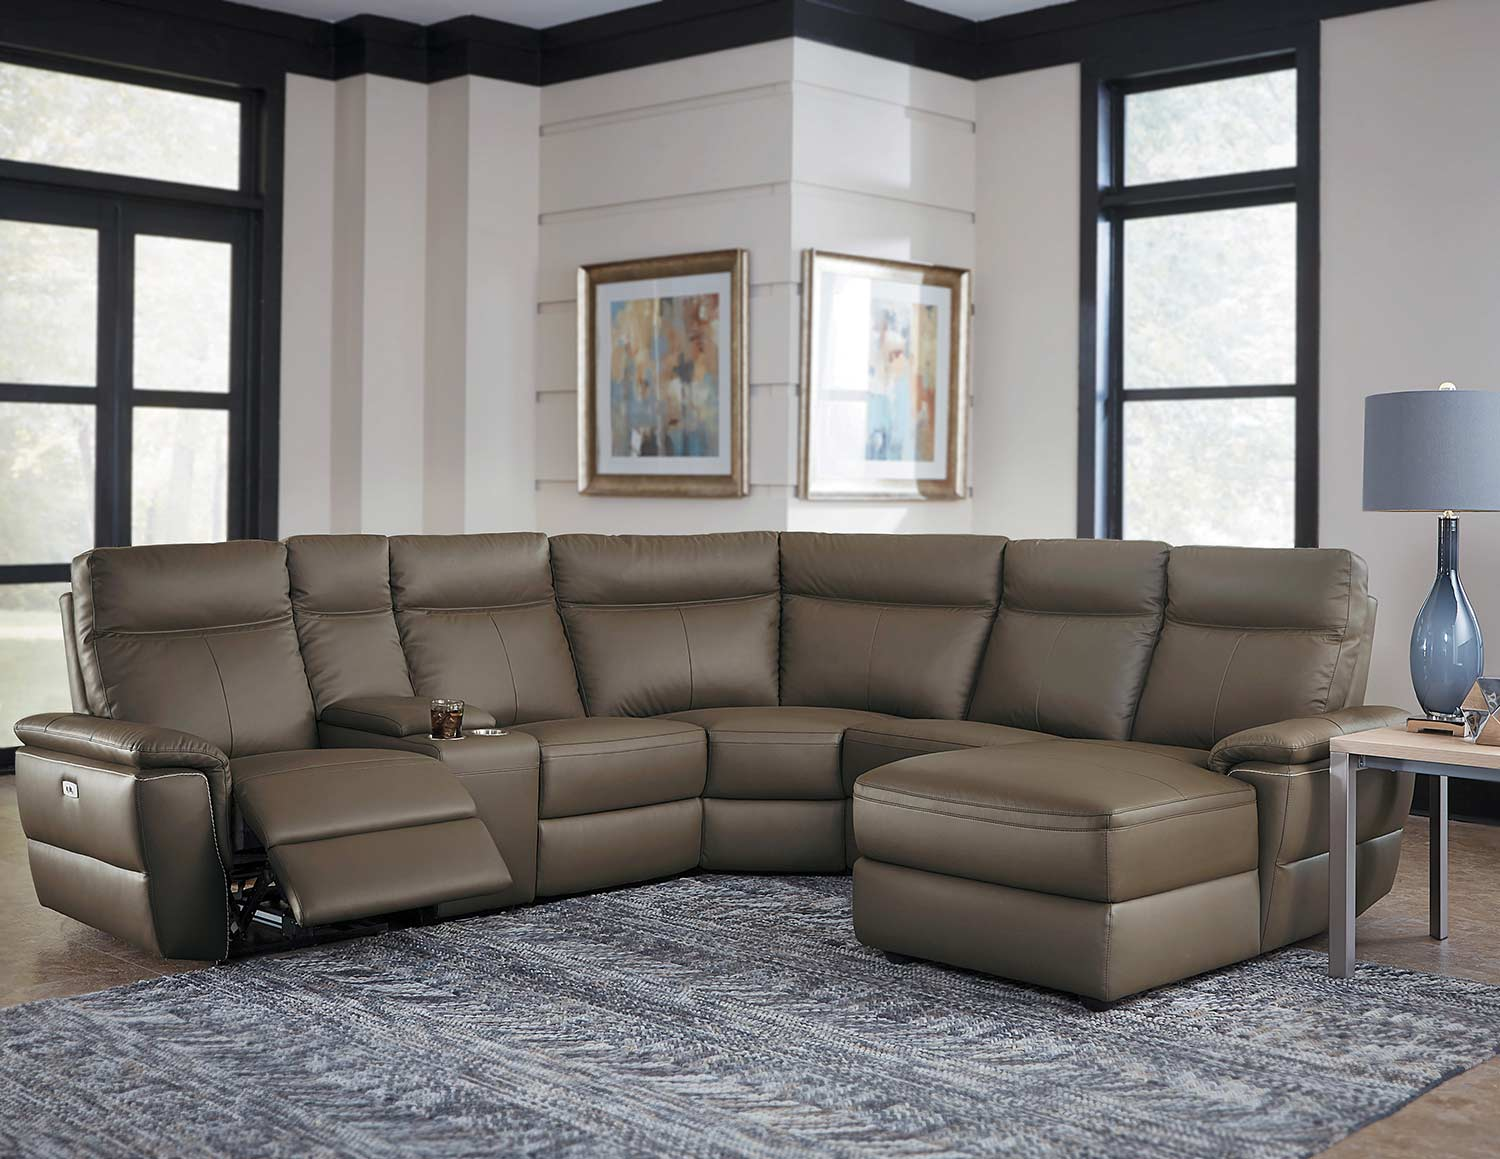 Homelegance Olympia Reclining Sectional Set Raisin Top Grain